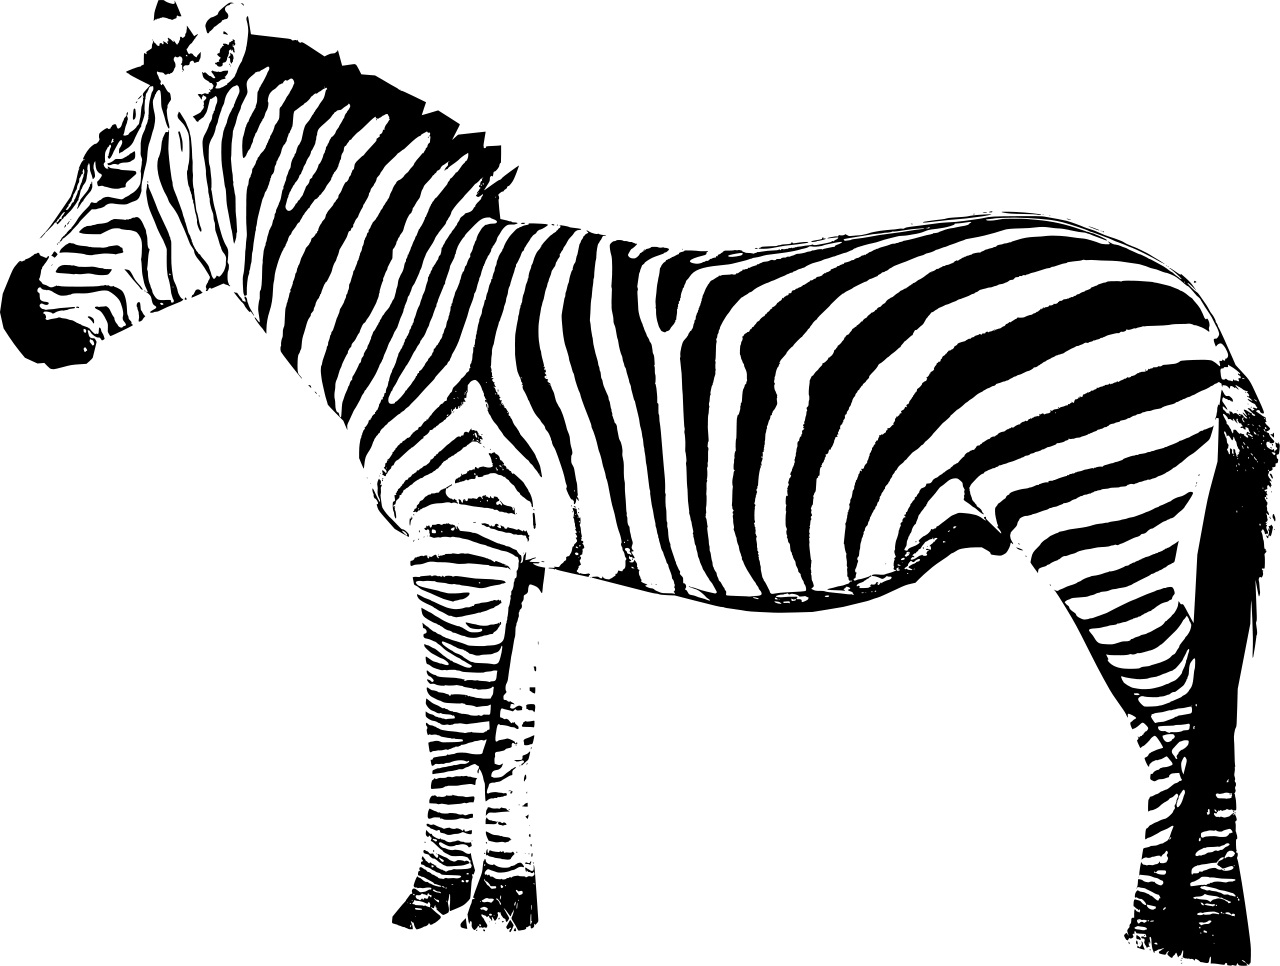 zebra print coloring pages zebra animals page 3 printable coloring pages zebra print coloring pages